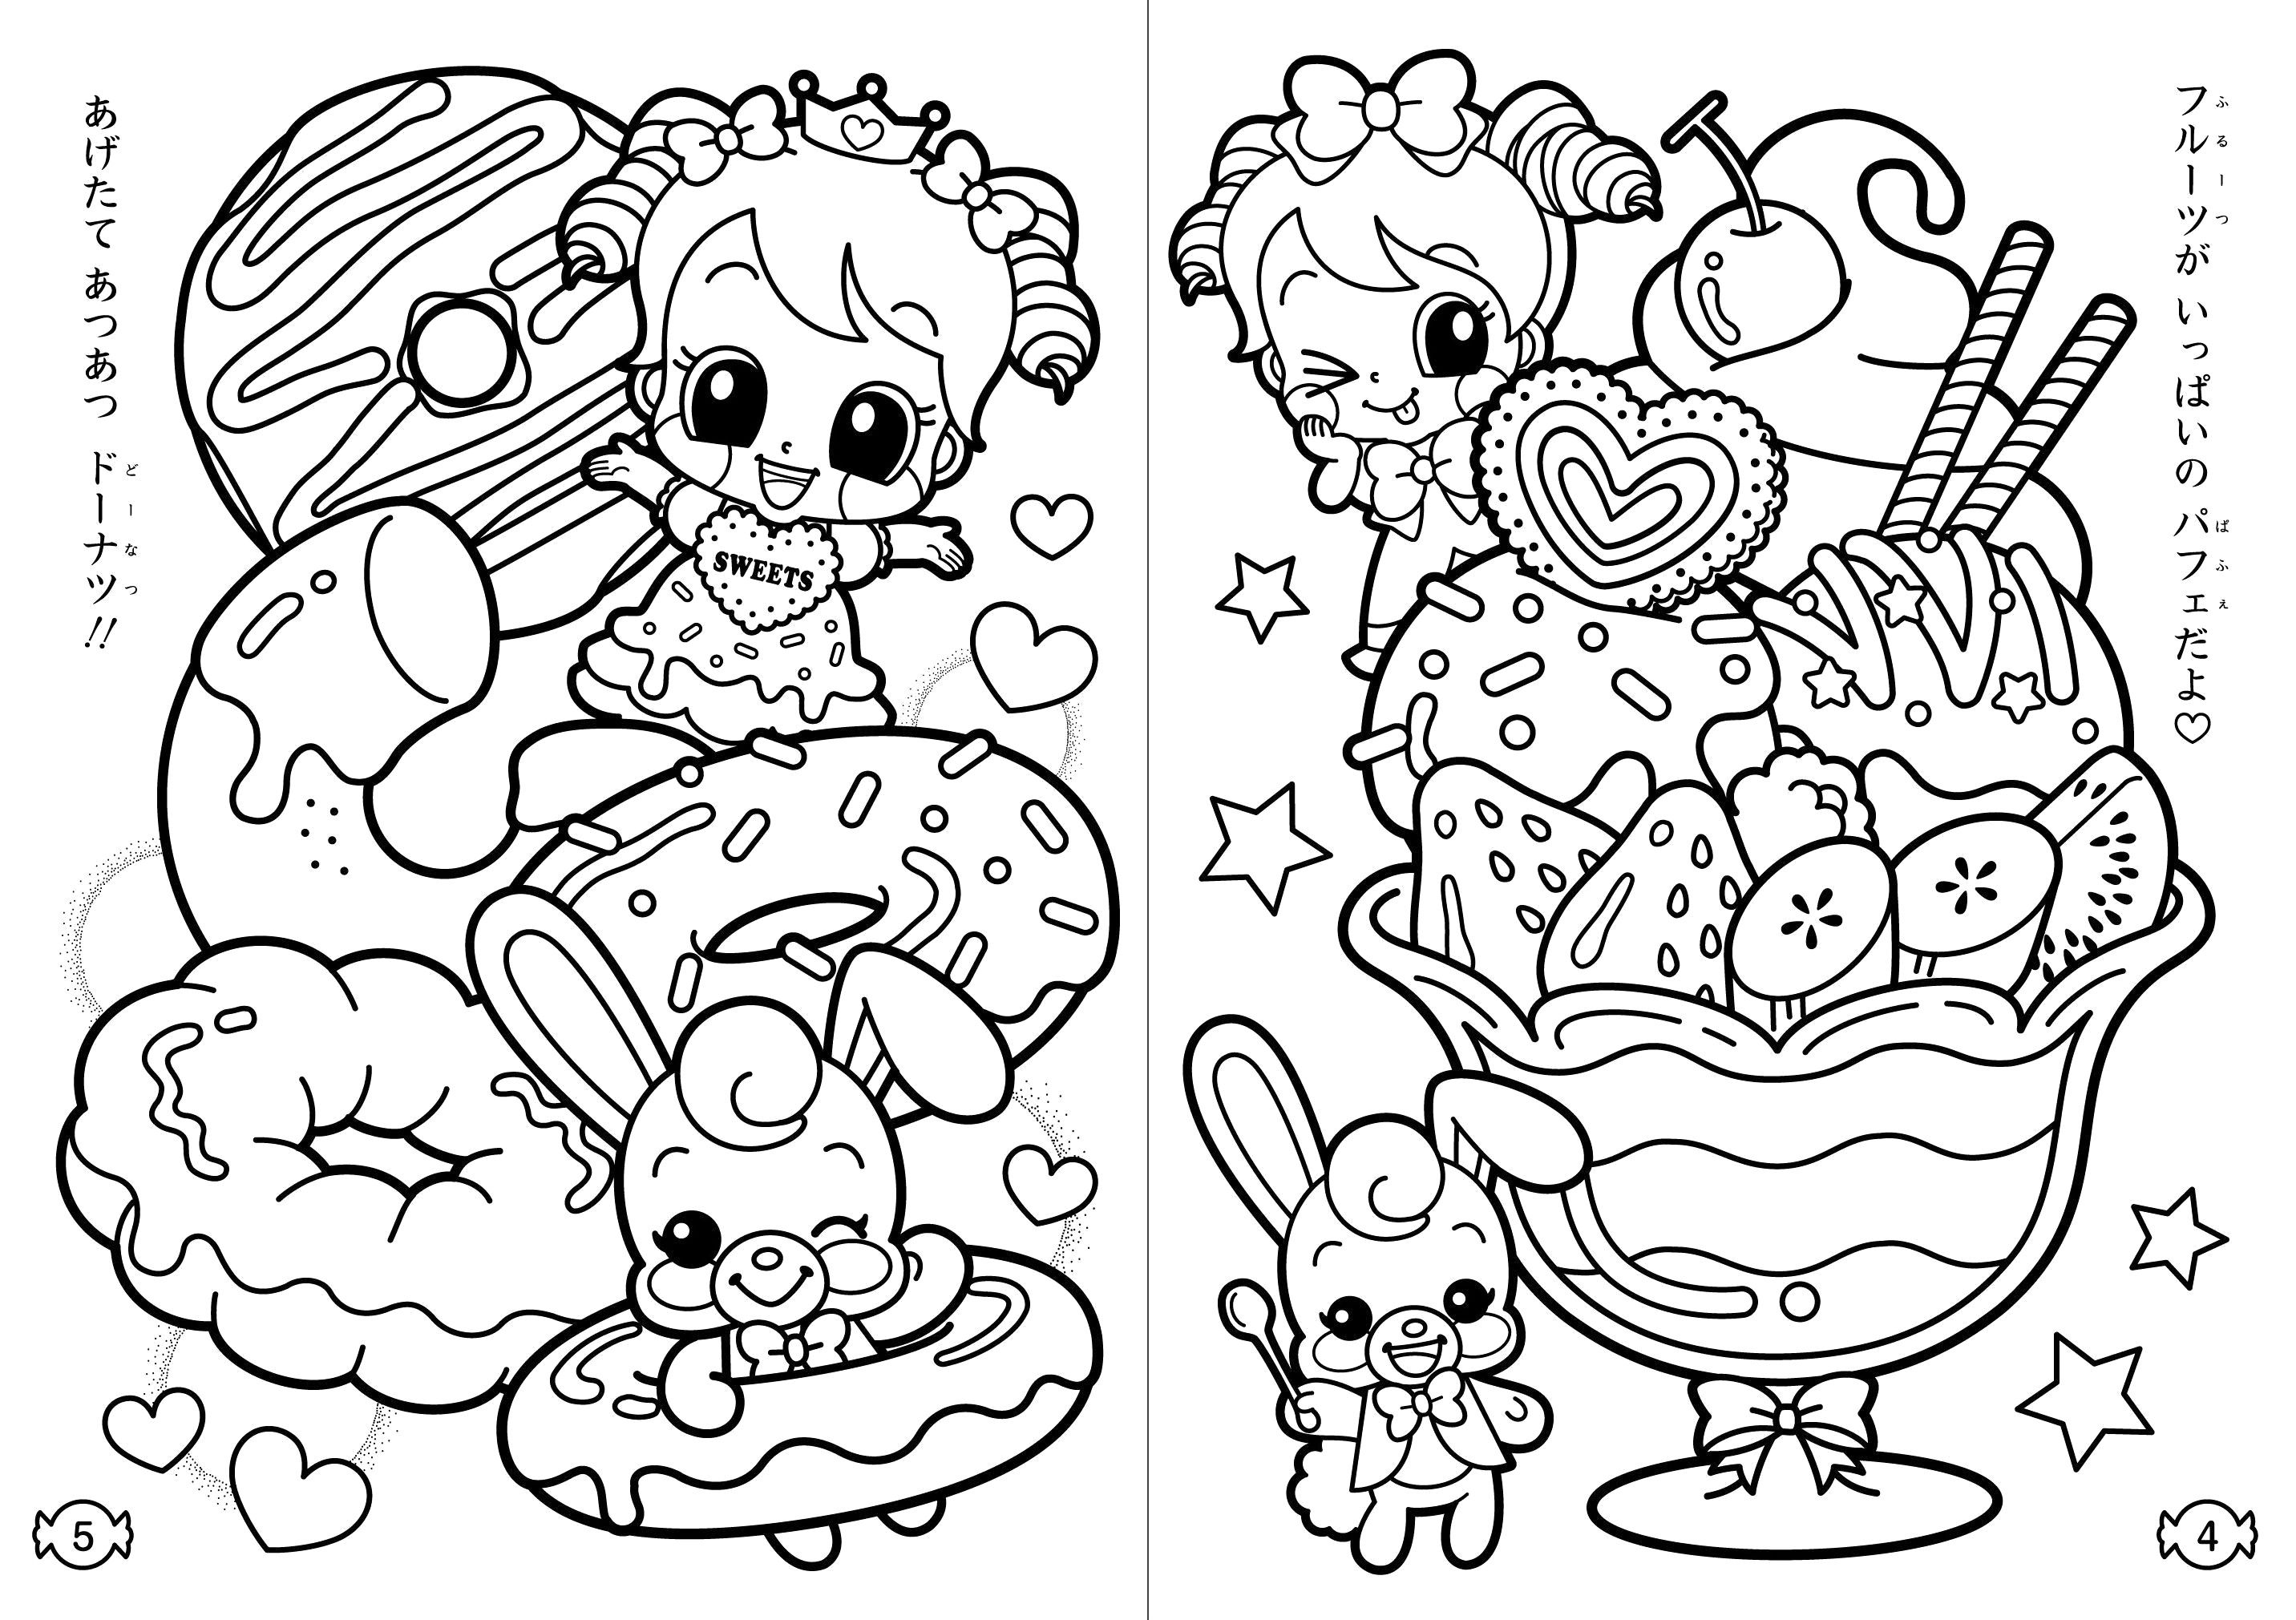 food colouring sheet cute food free coloring pages sheet colouring food